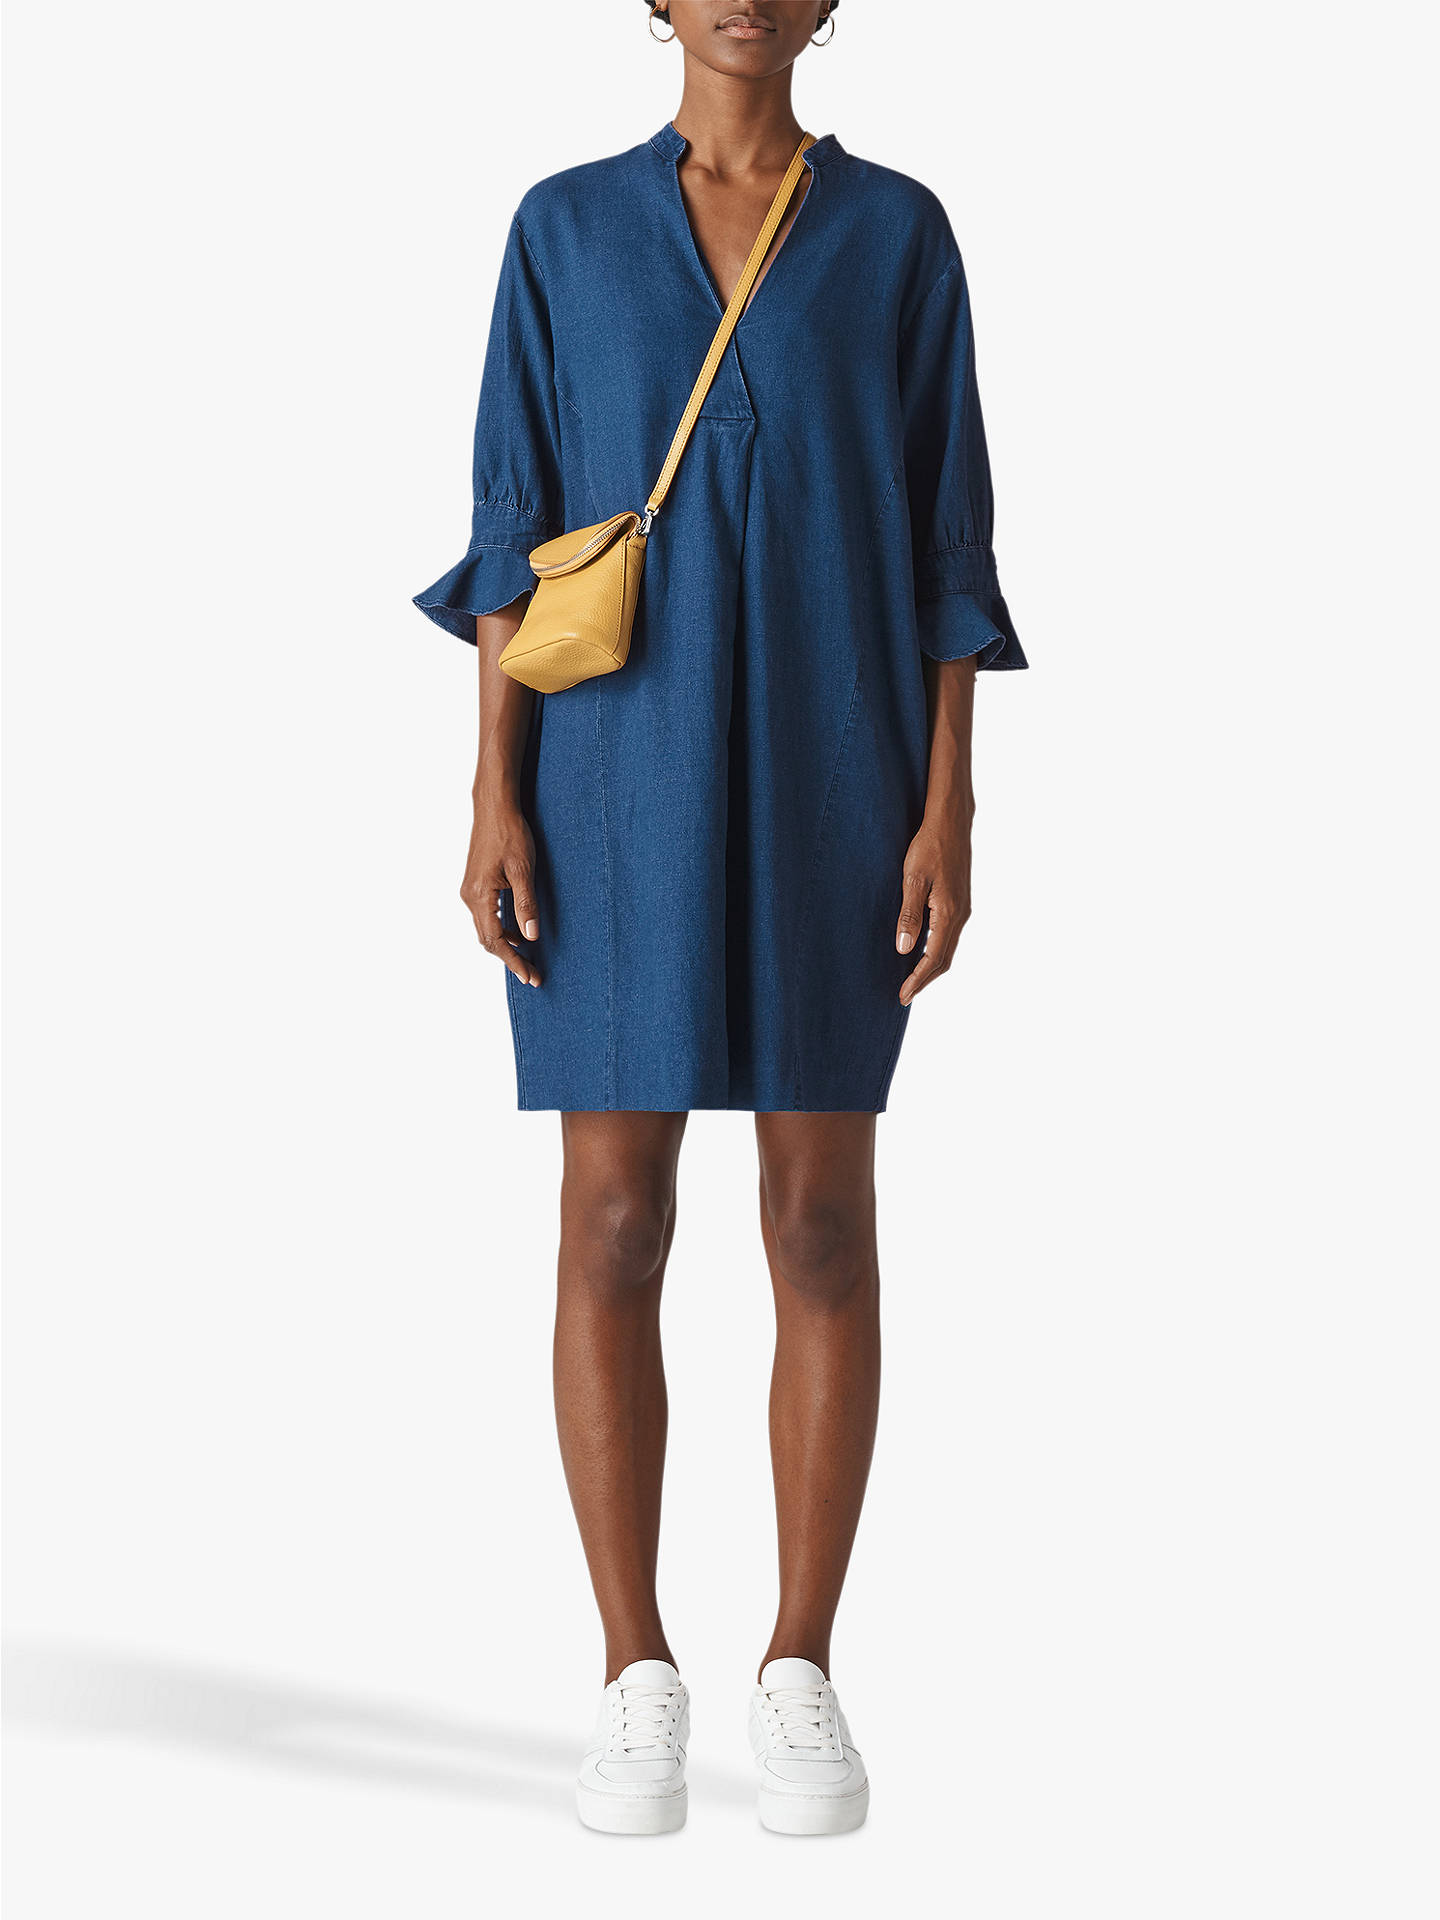 acad83de23 Buy Whistles Sonia Cotton Linen Frill Sleeve Dress, Denim, XS Online at  johnlewis.